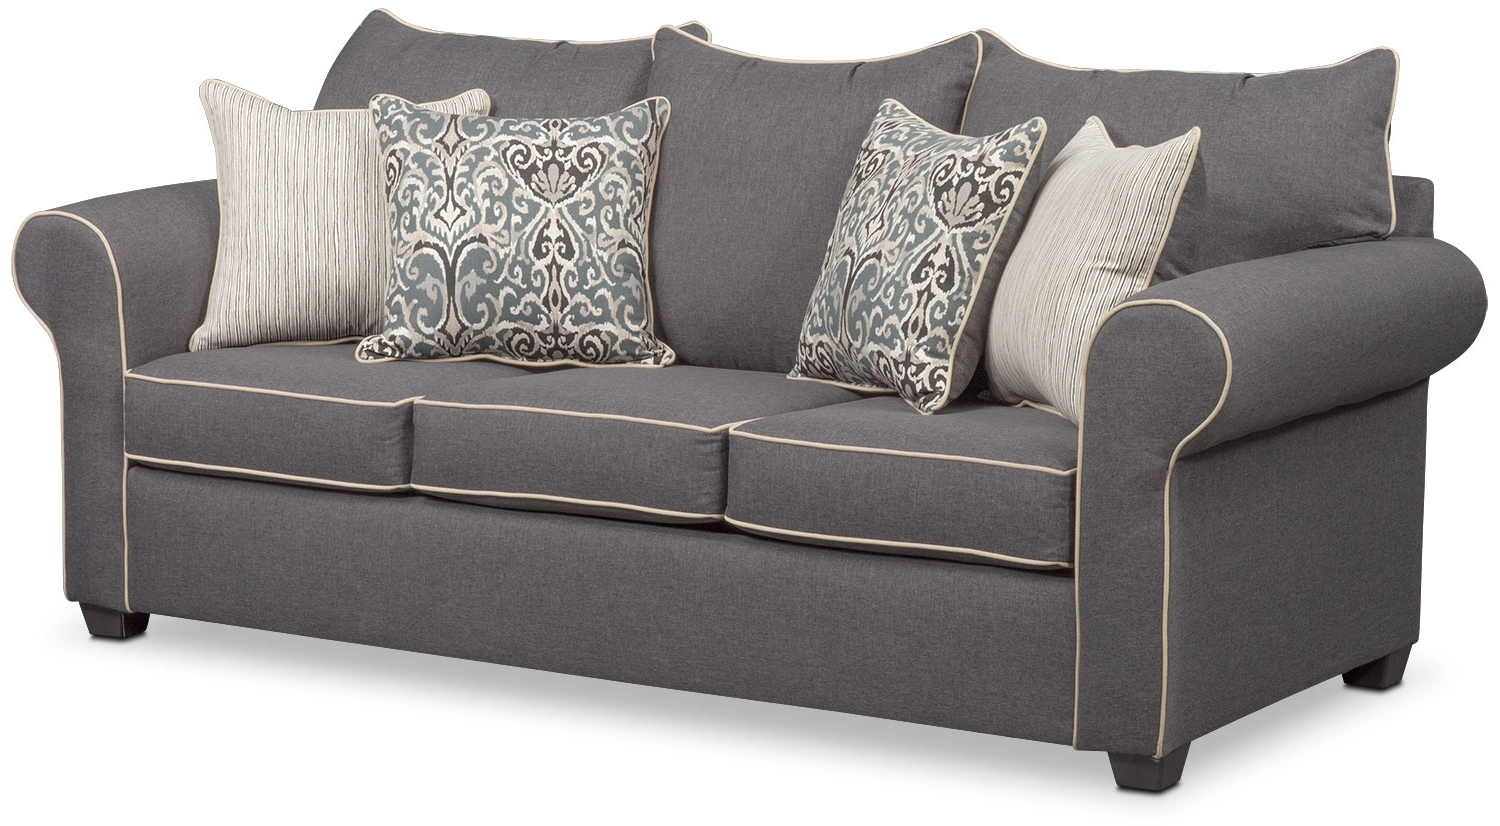 Newest Carla Sofa, Loveseat, And Accent Chair Set – Gray (View 15 of 15)